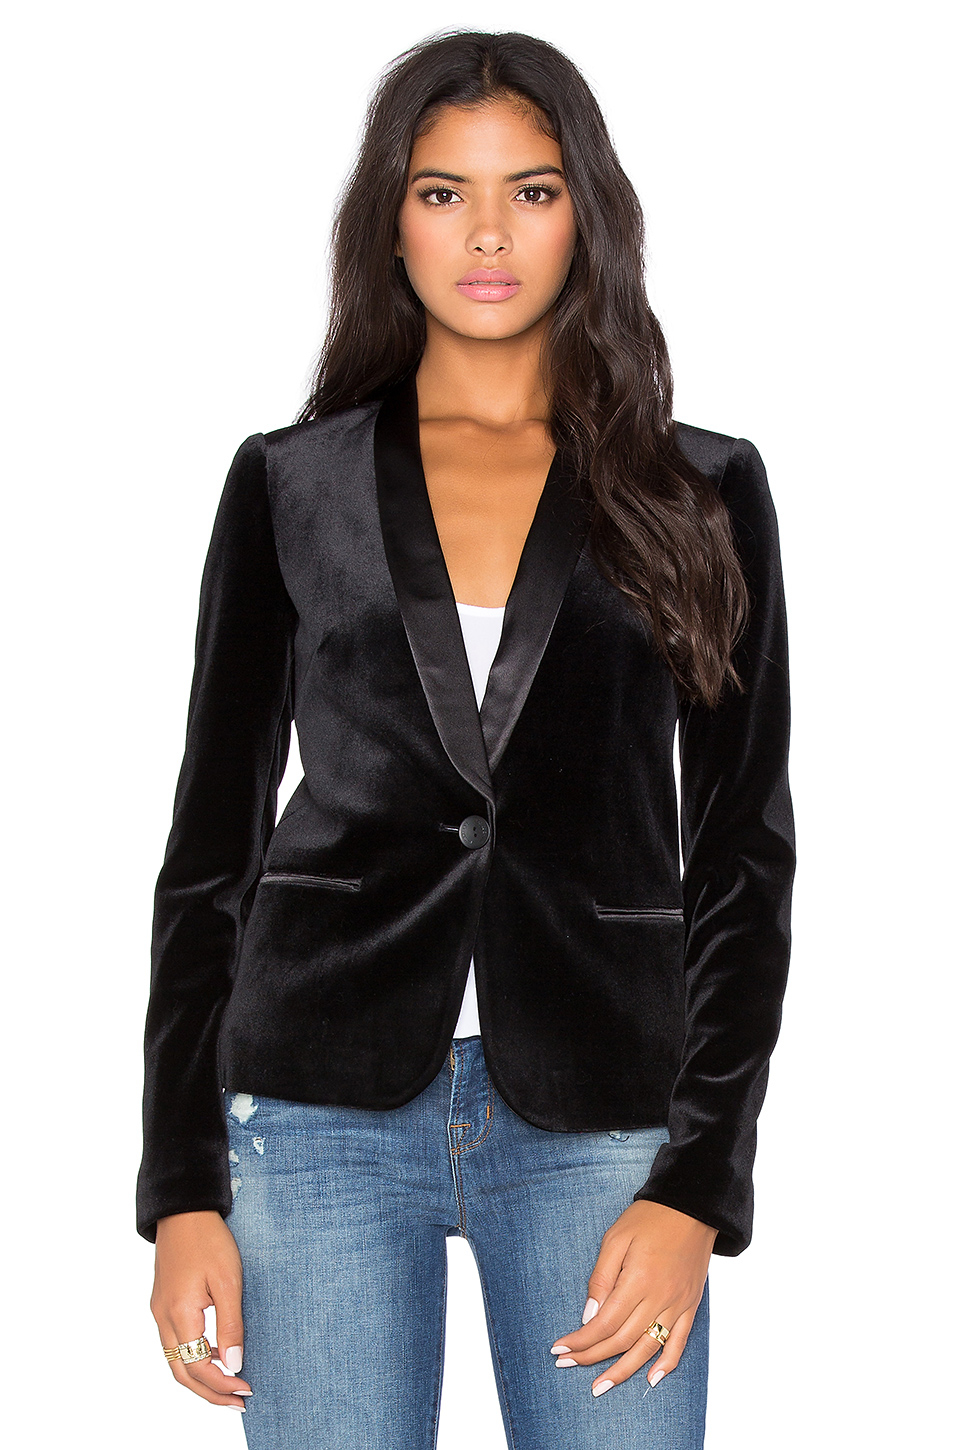 657056e86ad04 Lyst - James Jeans Tuxedo Jacket in Black